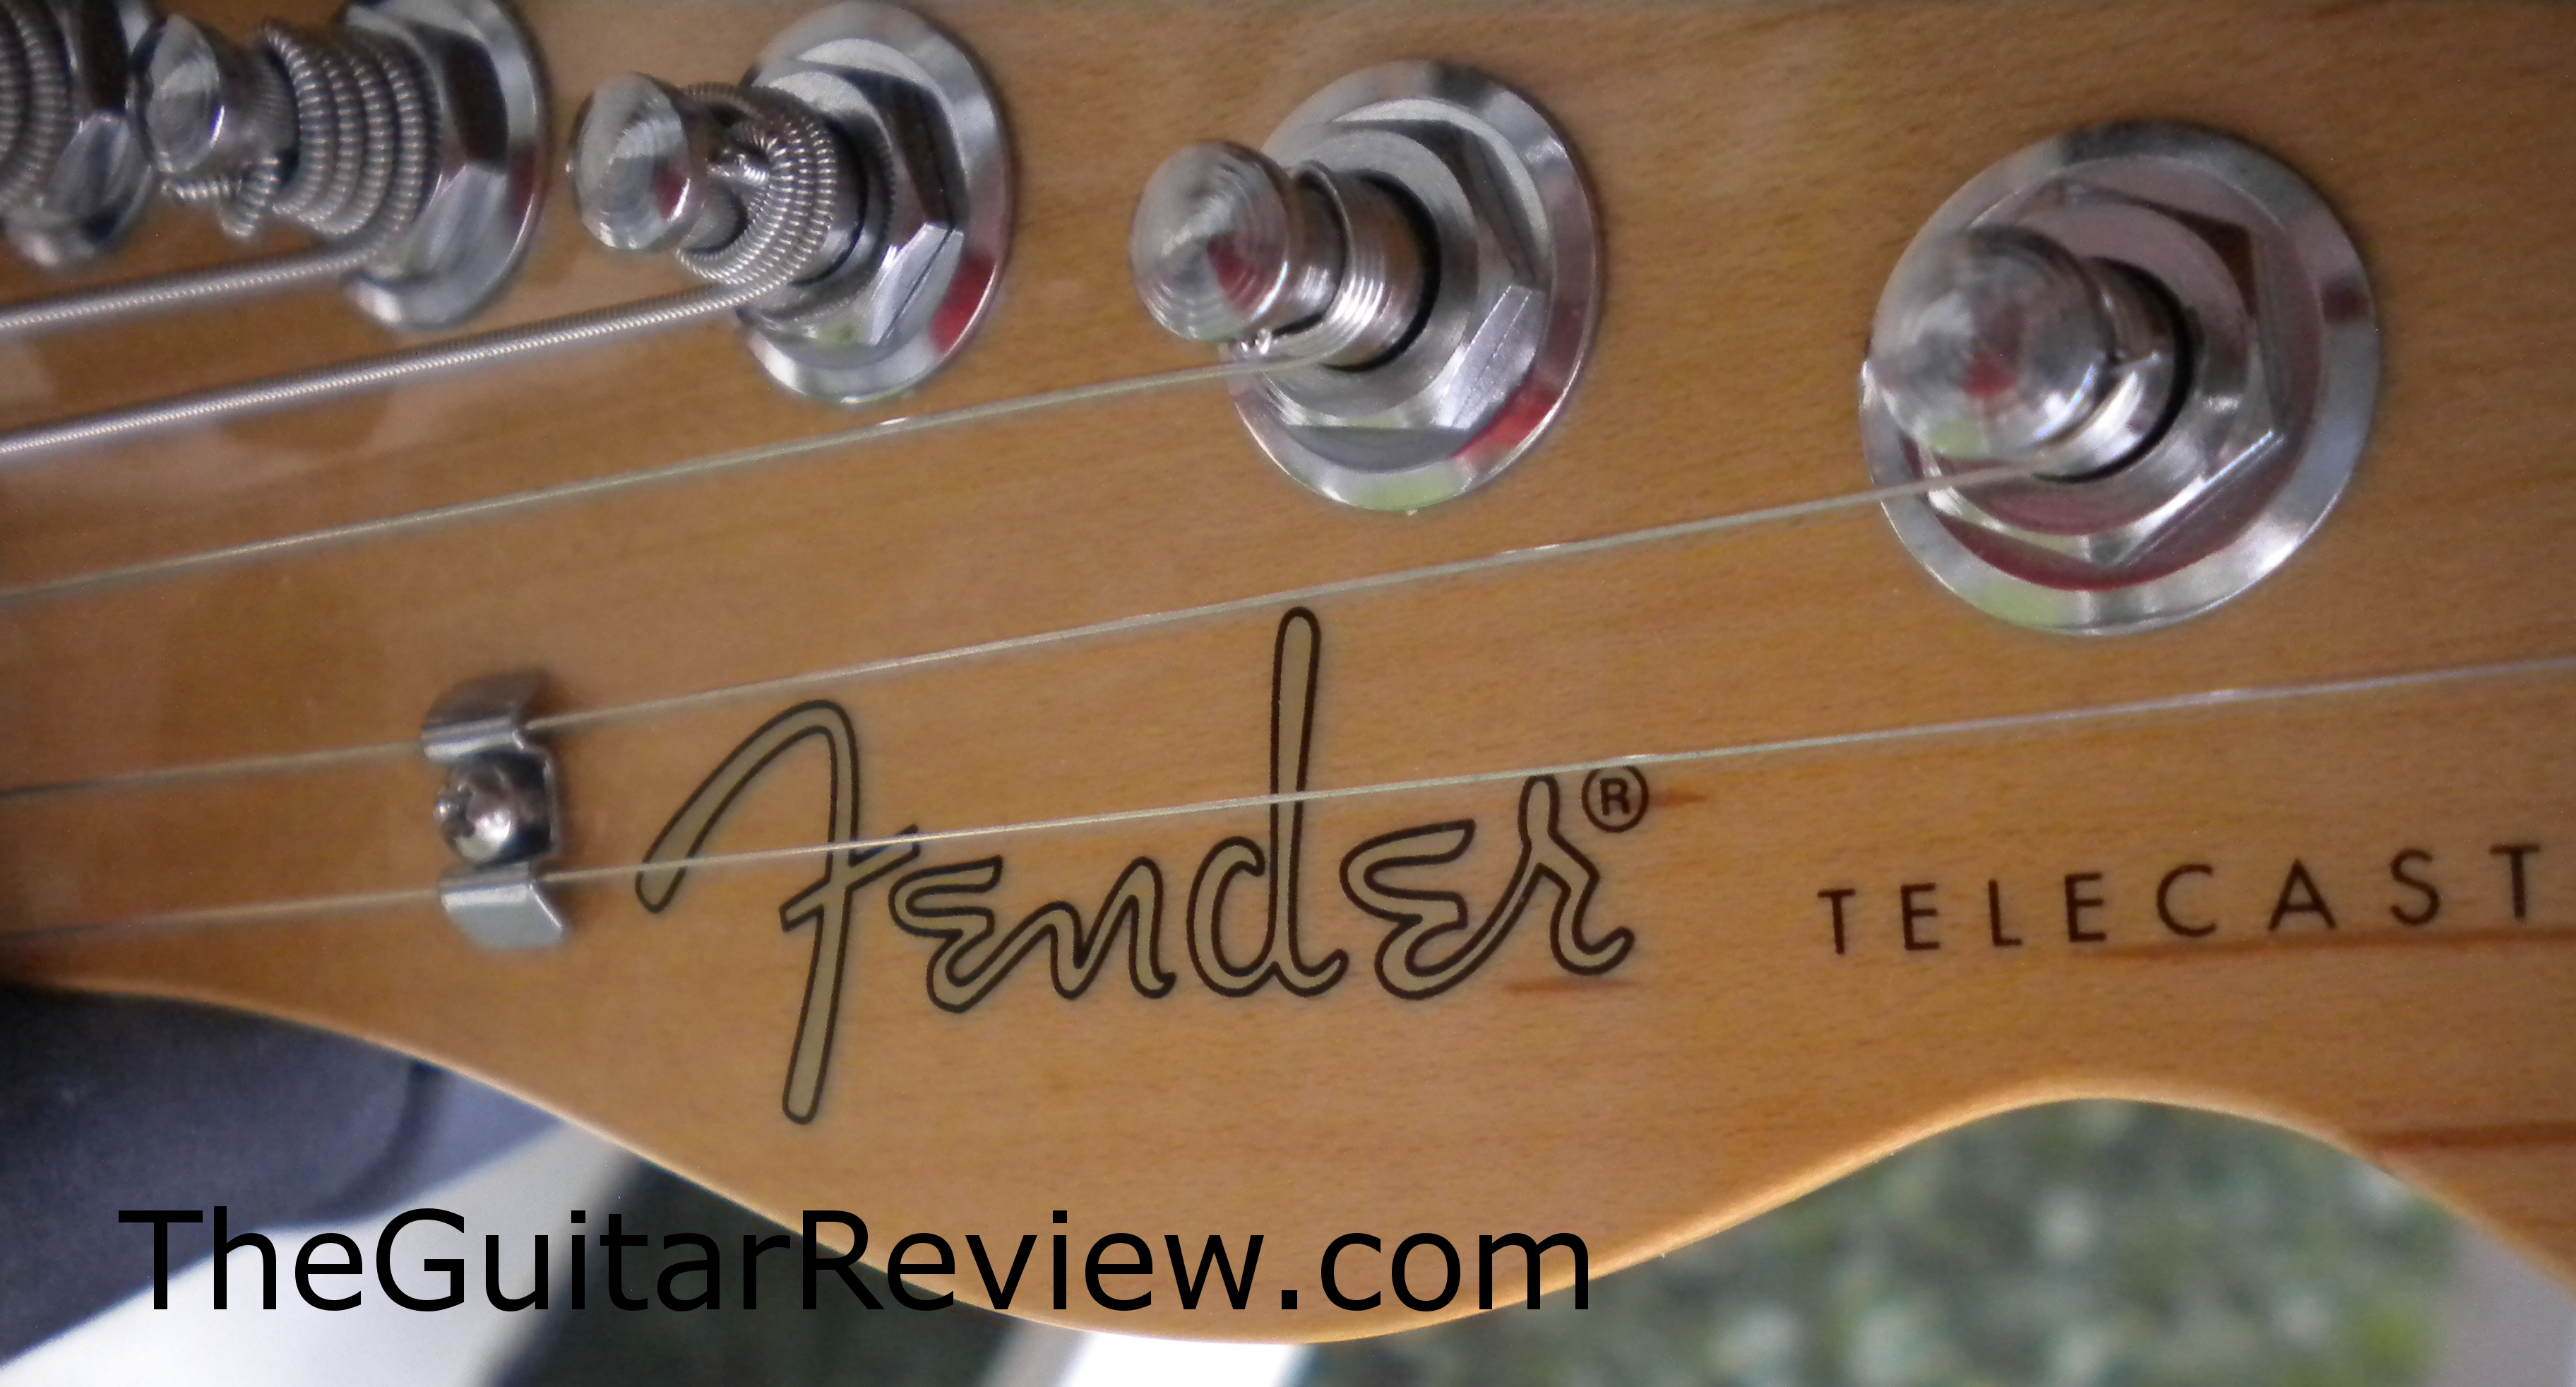 The Mighty Fender Blacktop Telecaster Baritone Review Get Down Low Lefty Strat Wiring Diagram Without Breaking Bank Guitar Dot Comtmthe Comtm